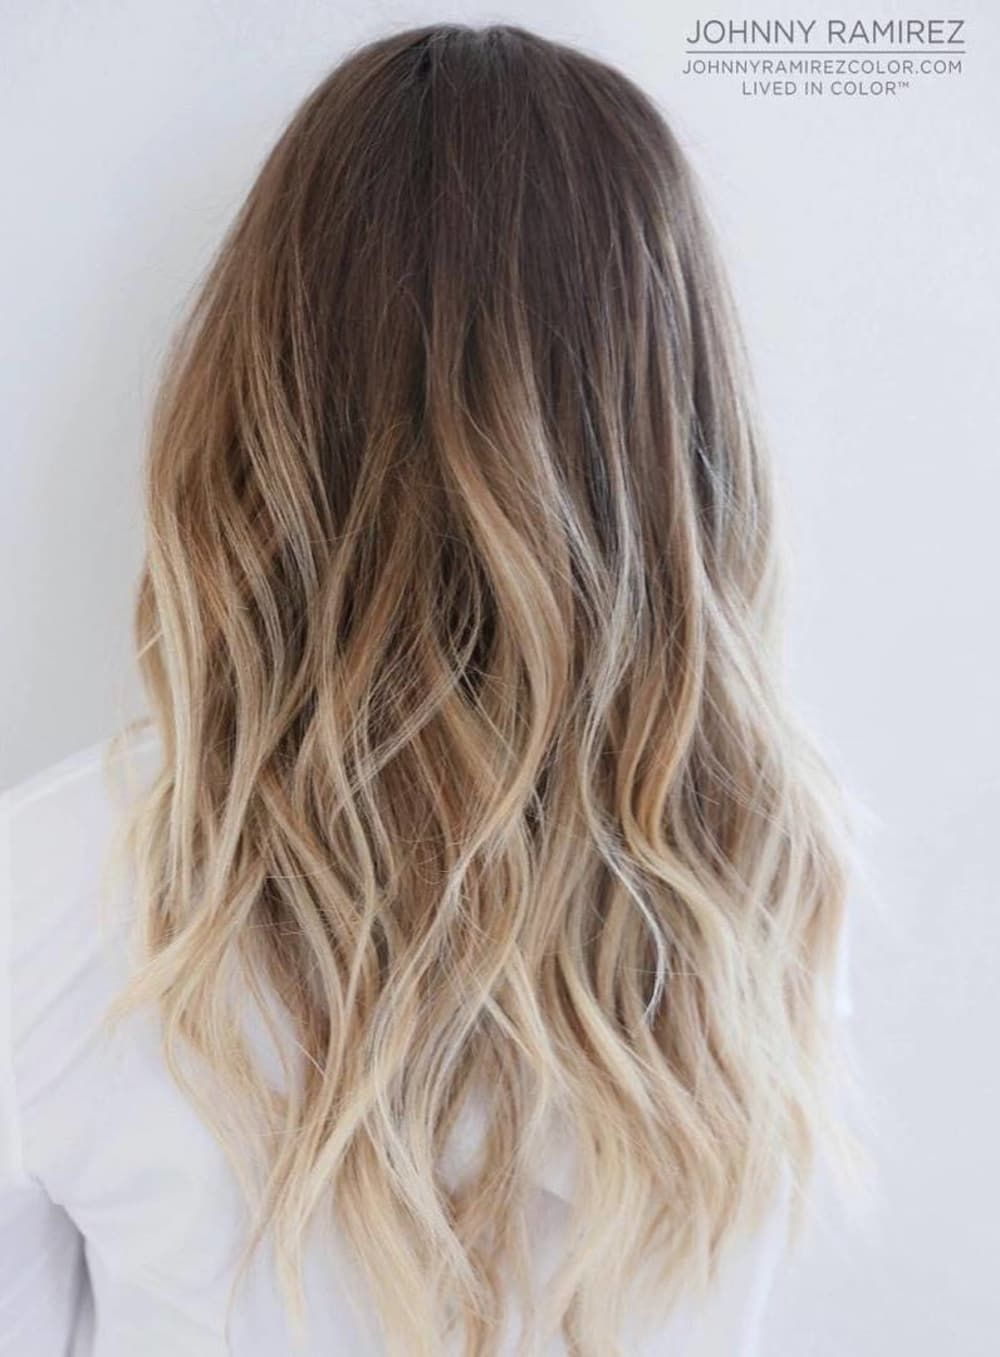 90 balayage hair color ideas with blonde, brown and caramel